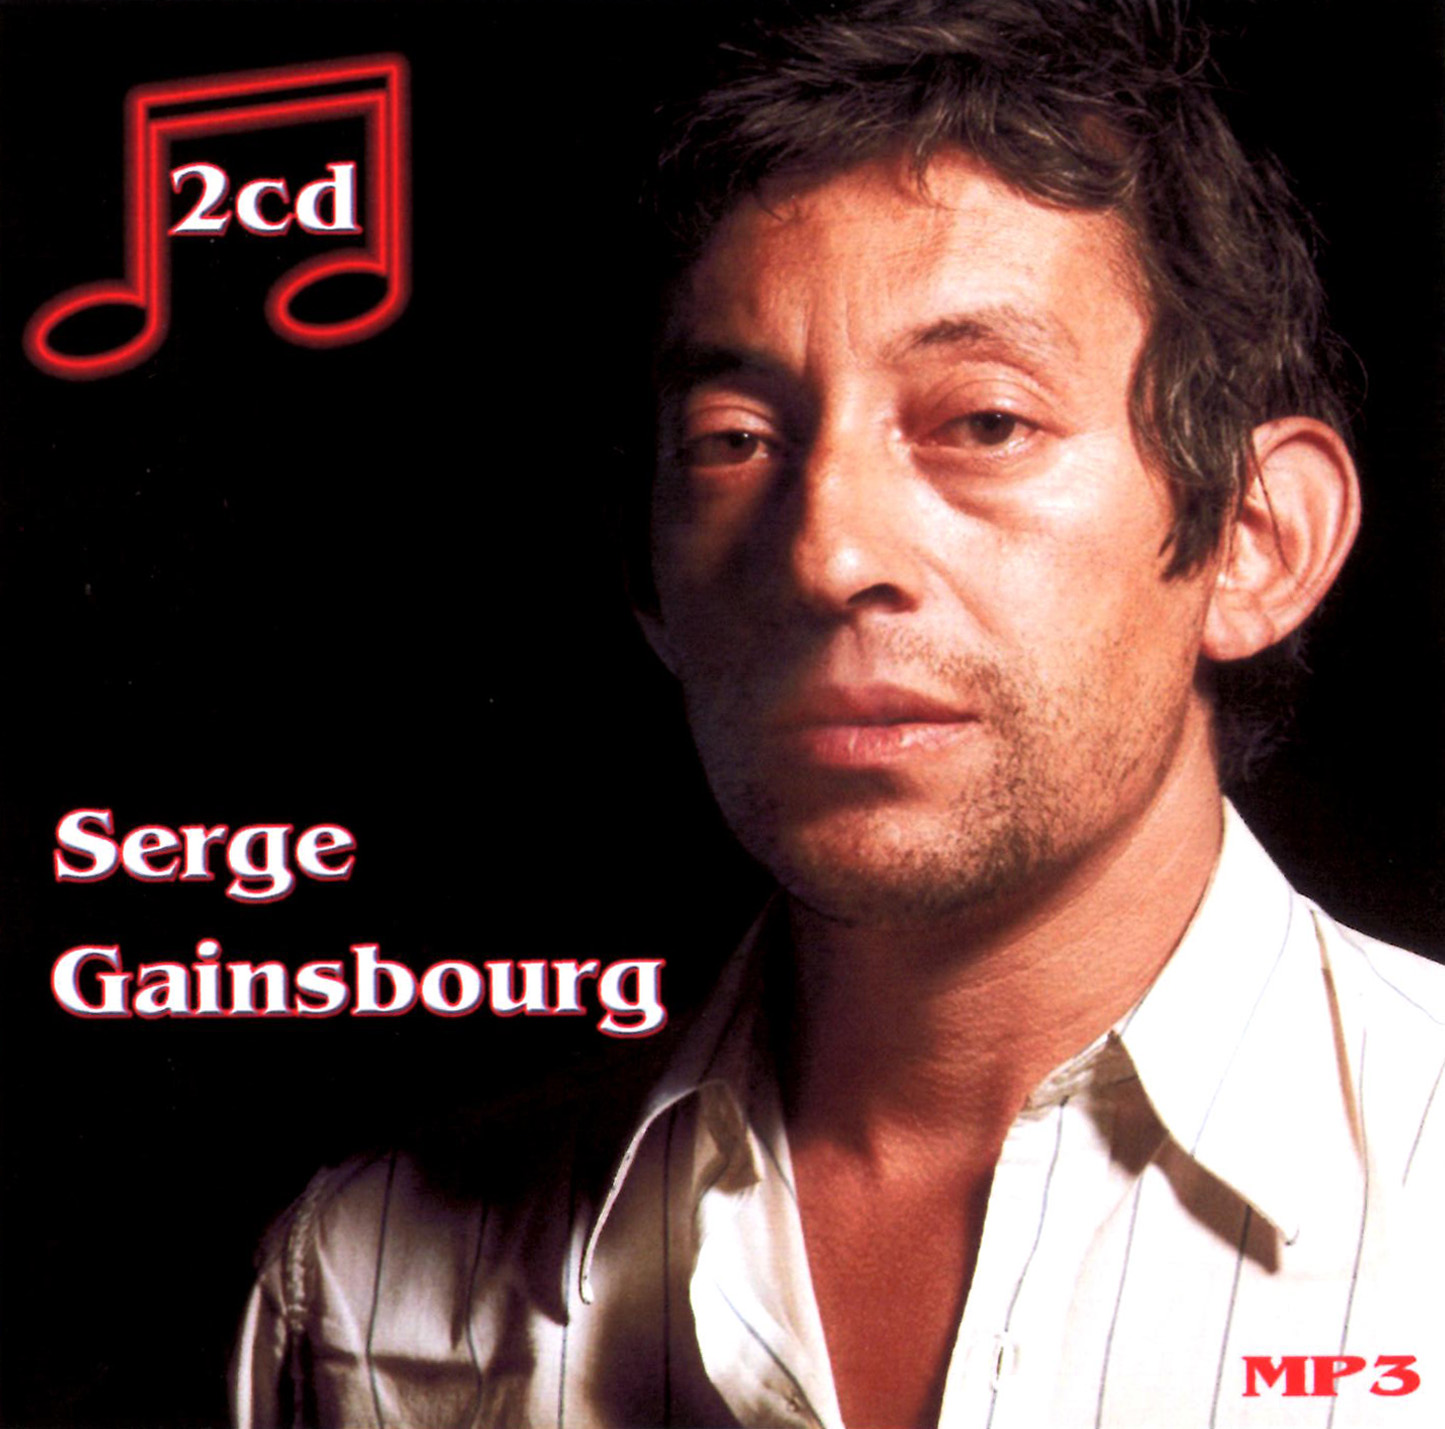 Serge Gainsbourg 2cd [mp3]